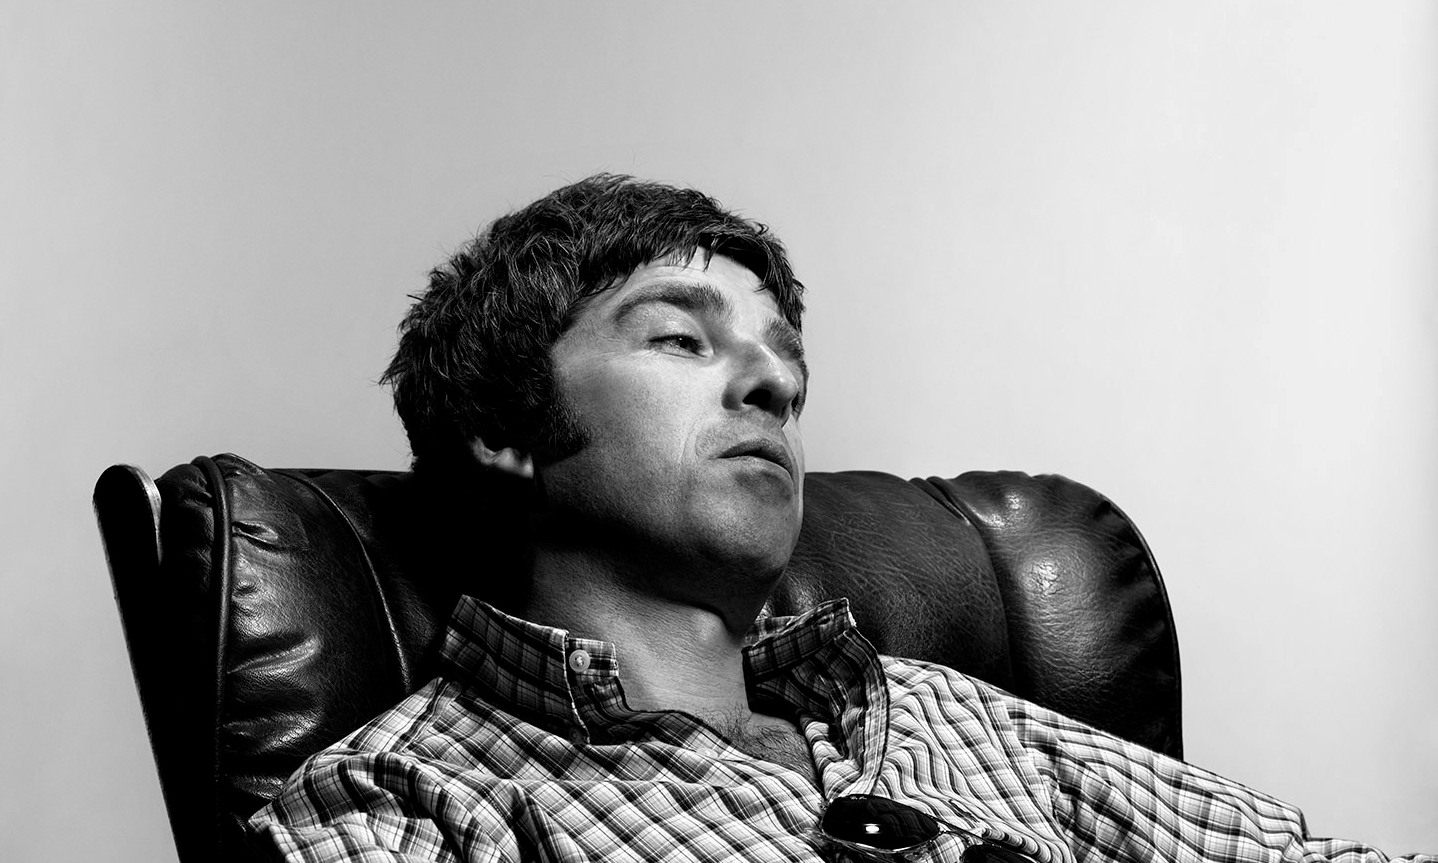 http://lounge.obviousmag.org/particulas_do_acaso/2015/11/07/noel_gallagher.jpg